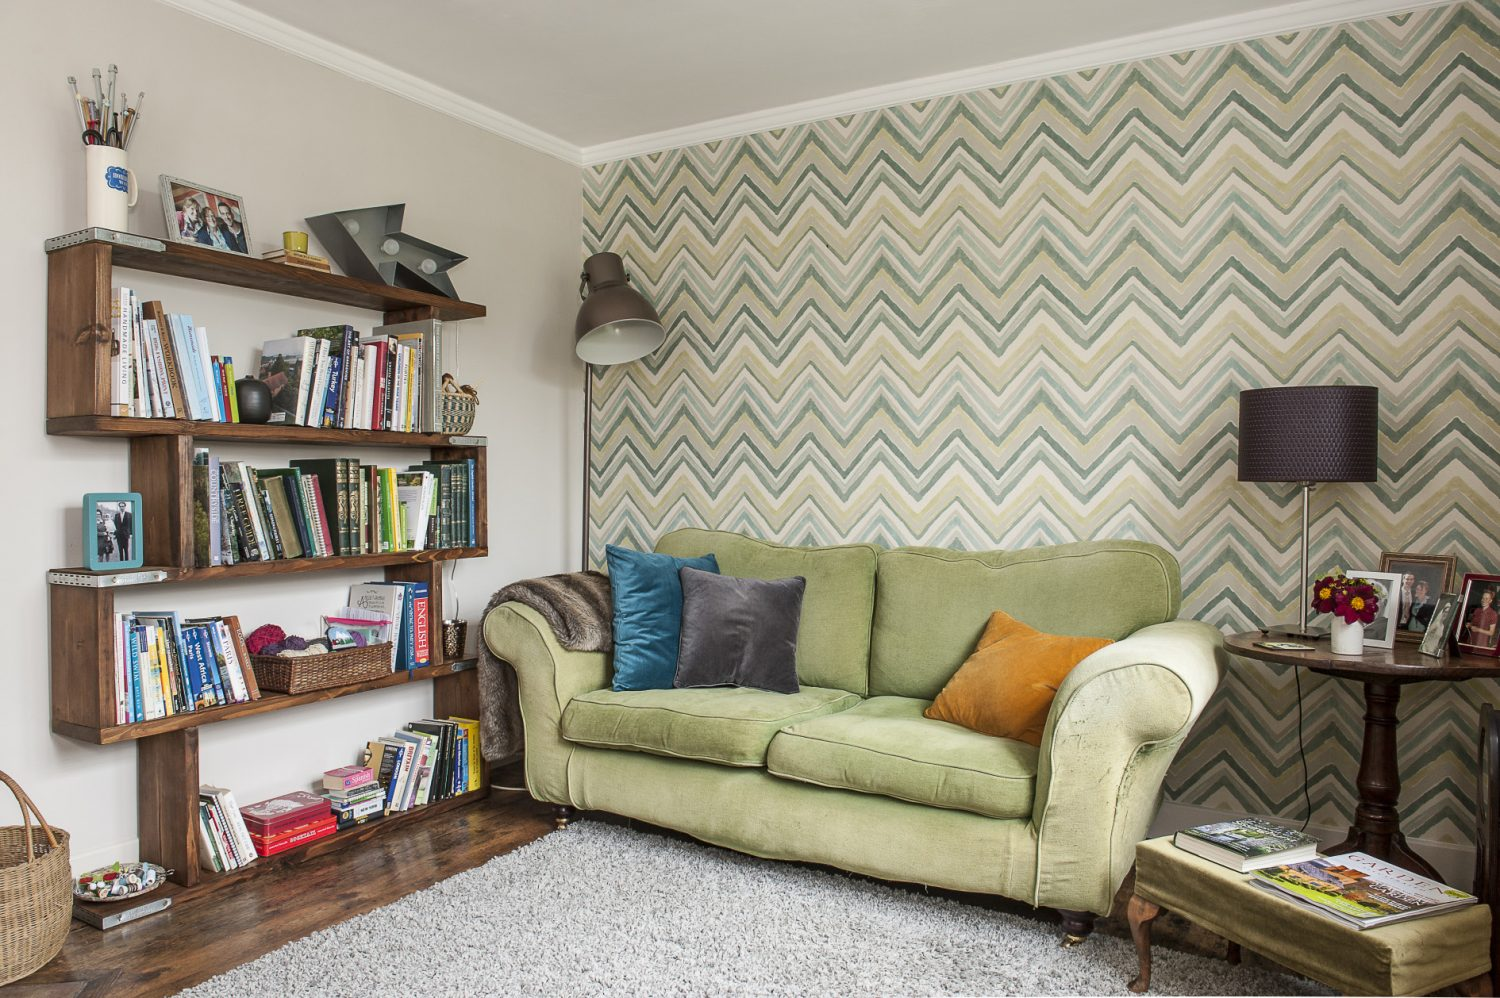 Colour-blocking with cushions keeps things simple, in front of the vibrant zig-zag wallpaper. The bookshelf is made from scaffolding boards and was inspired by a version that Claire saw in a high street store.